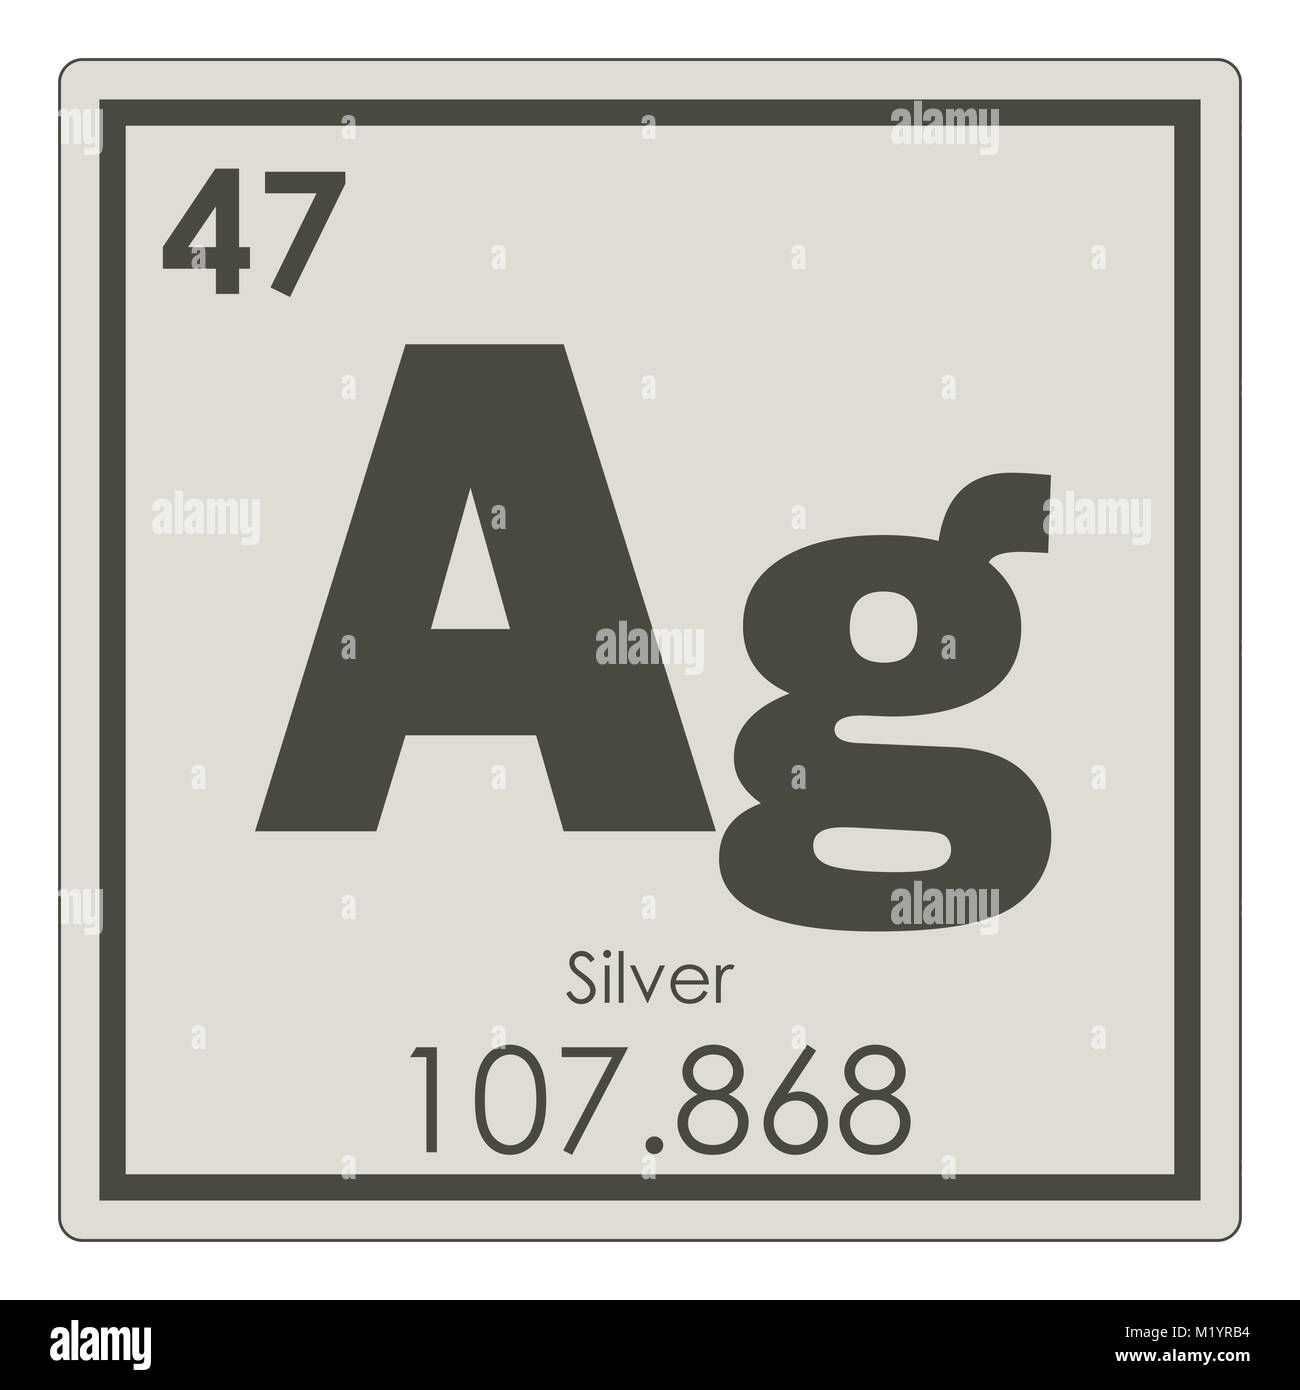 Silver chemical element periodic table science symbol stock photo silver chemical element periodic table science symbol urtaz Image collections